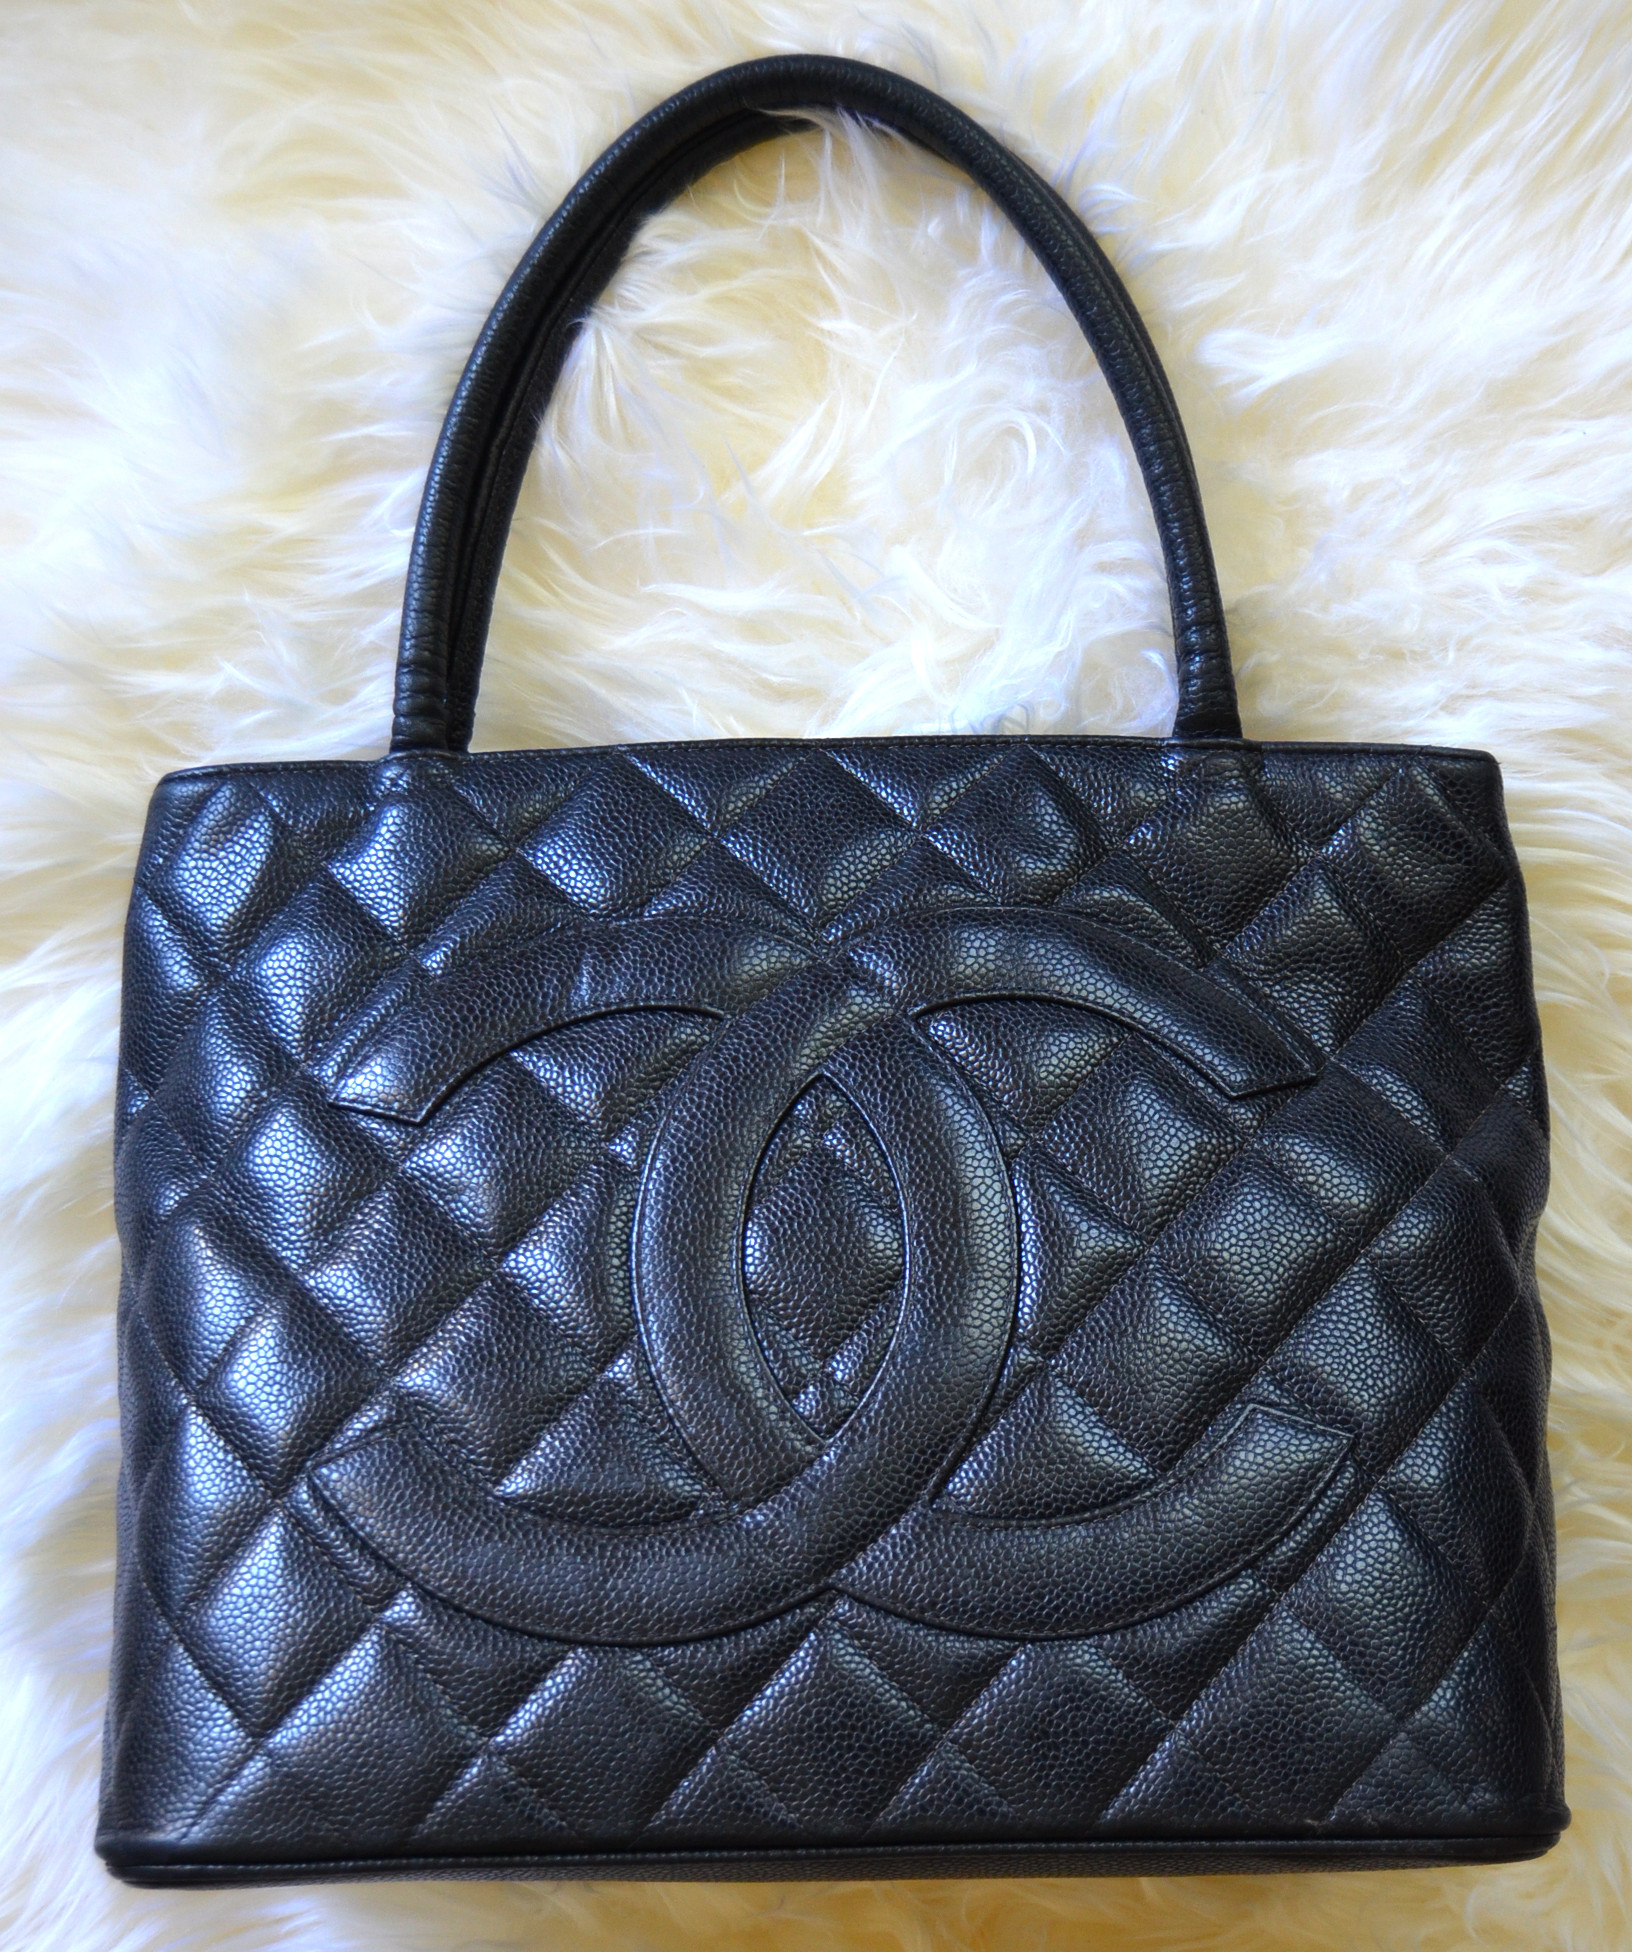 inside black a caviar review medallion handbag bag lollipuff chanel fits what in blog